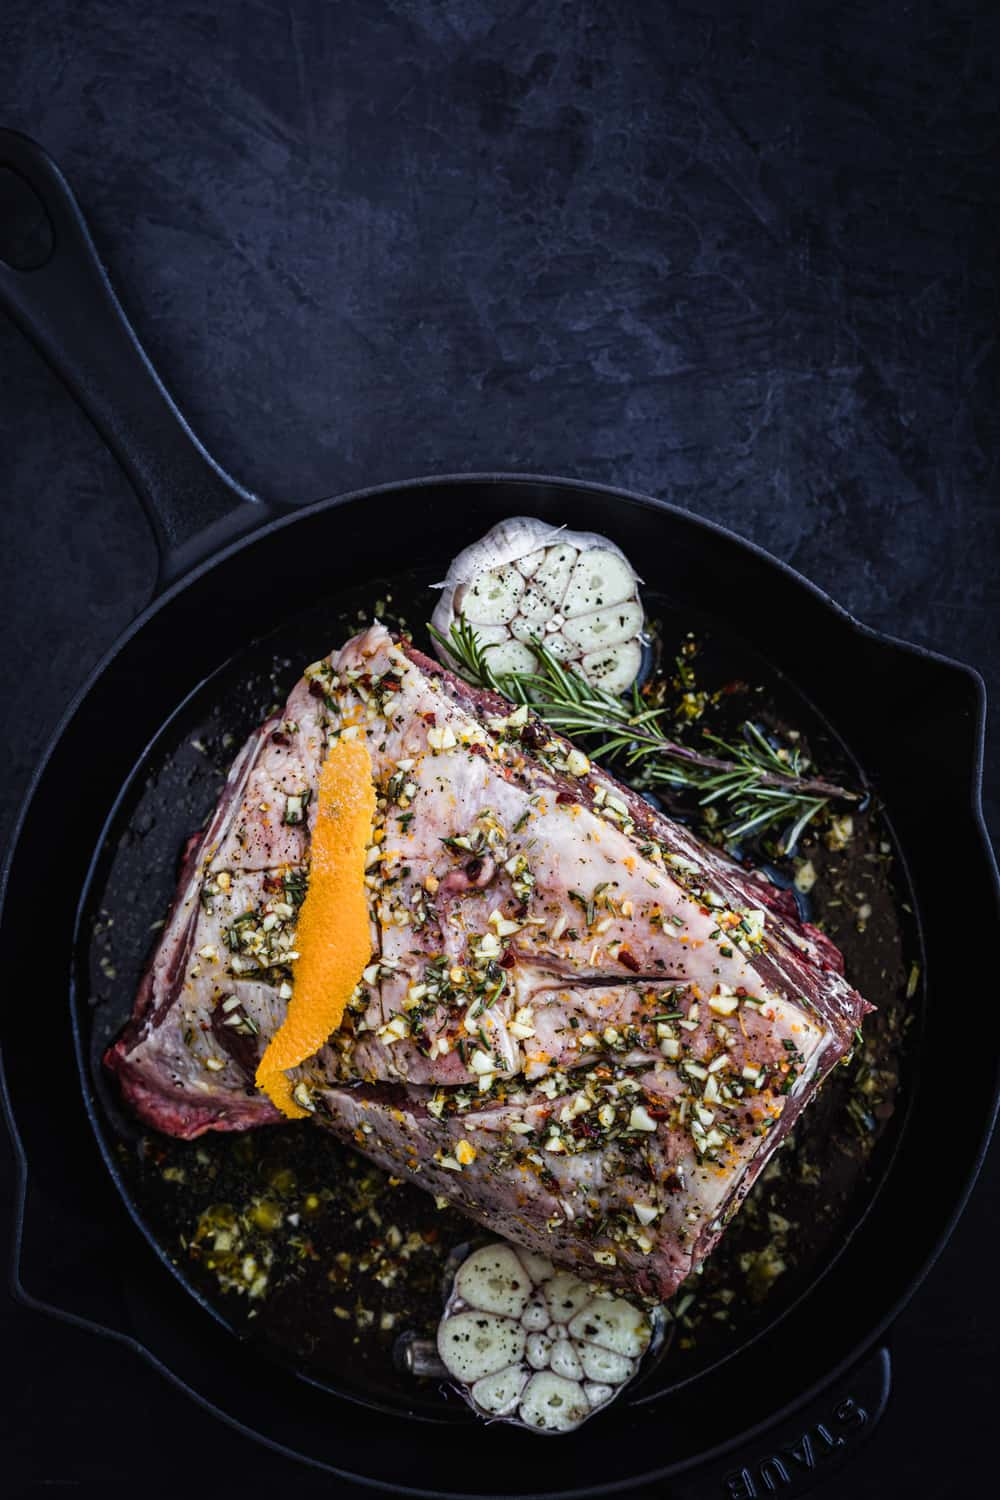 Lamb shoulder with rosemary, garlic and orange zest, in a cast iron skillet all ready for the oven.